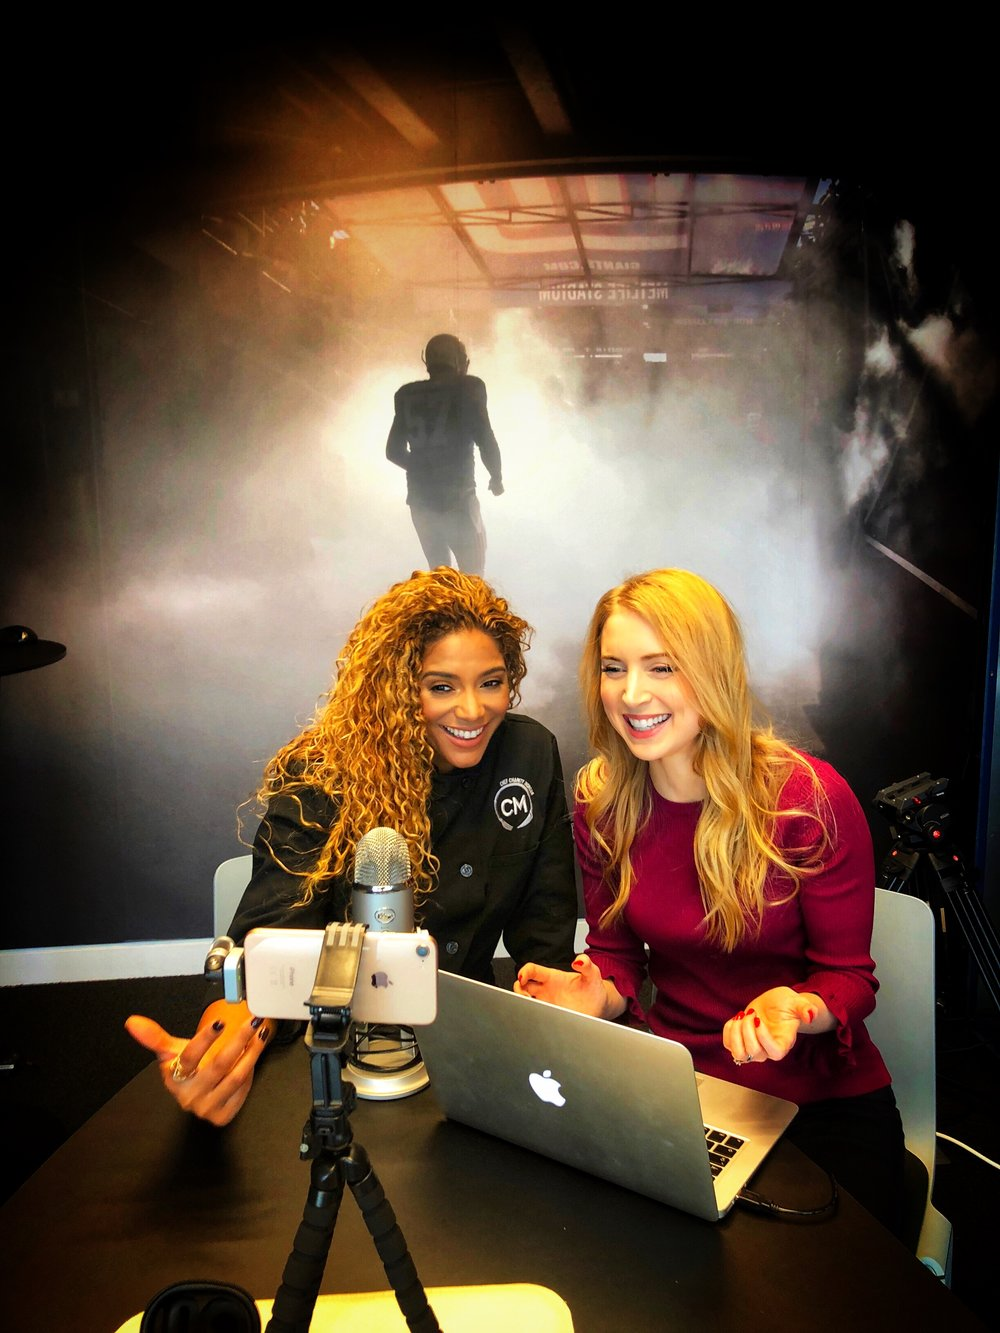 At NFL HQ in London with Charity Morgan